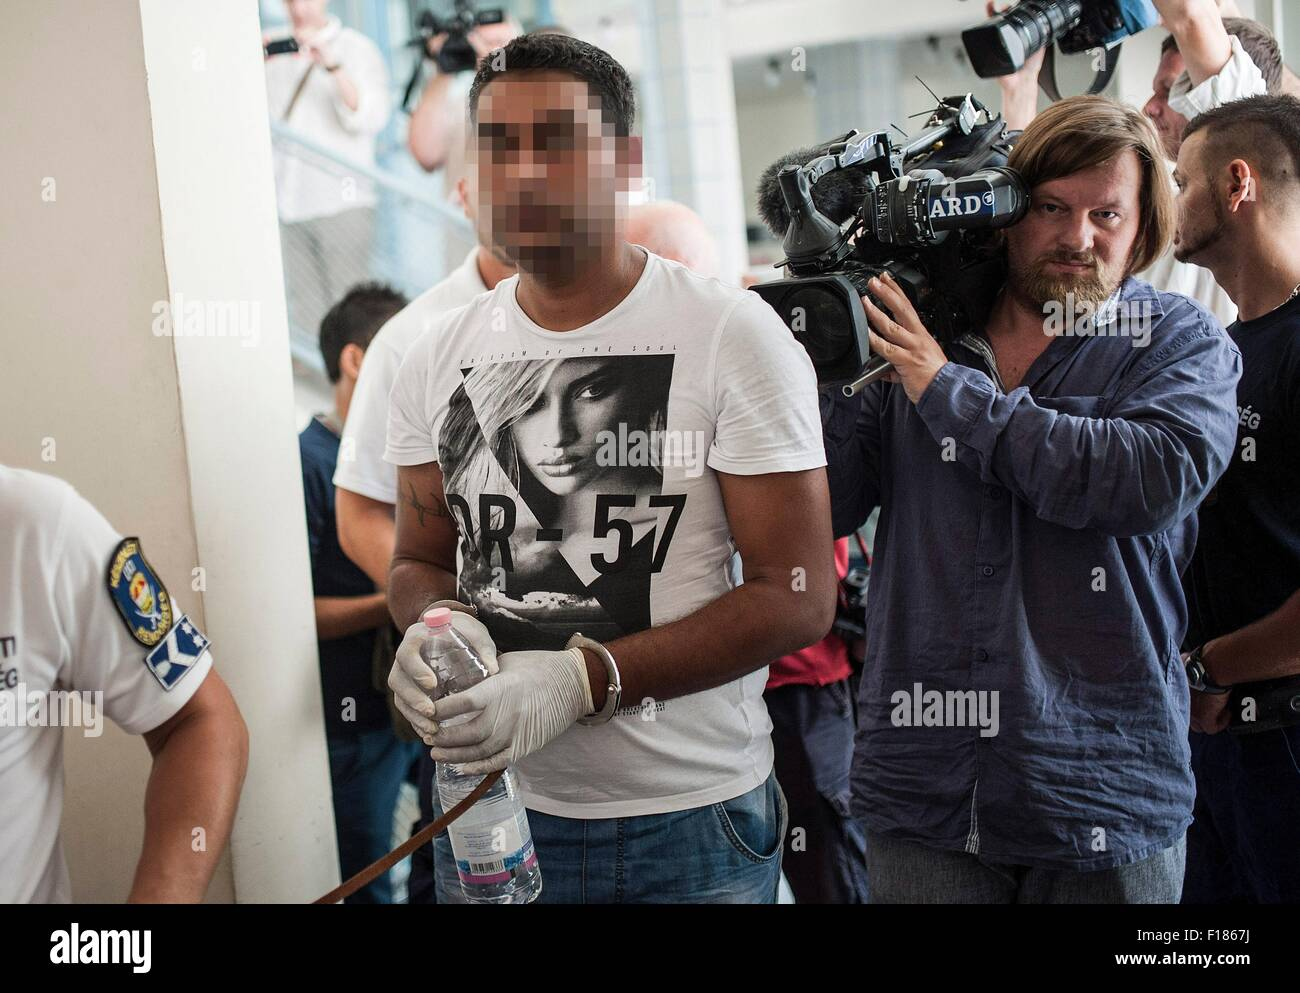 Kecskemet, Hungary. 29th Aug, 2015. One of the four suspects is led by the Hungarian police official into a courtroom - Stock Image